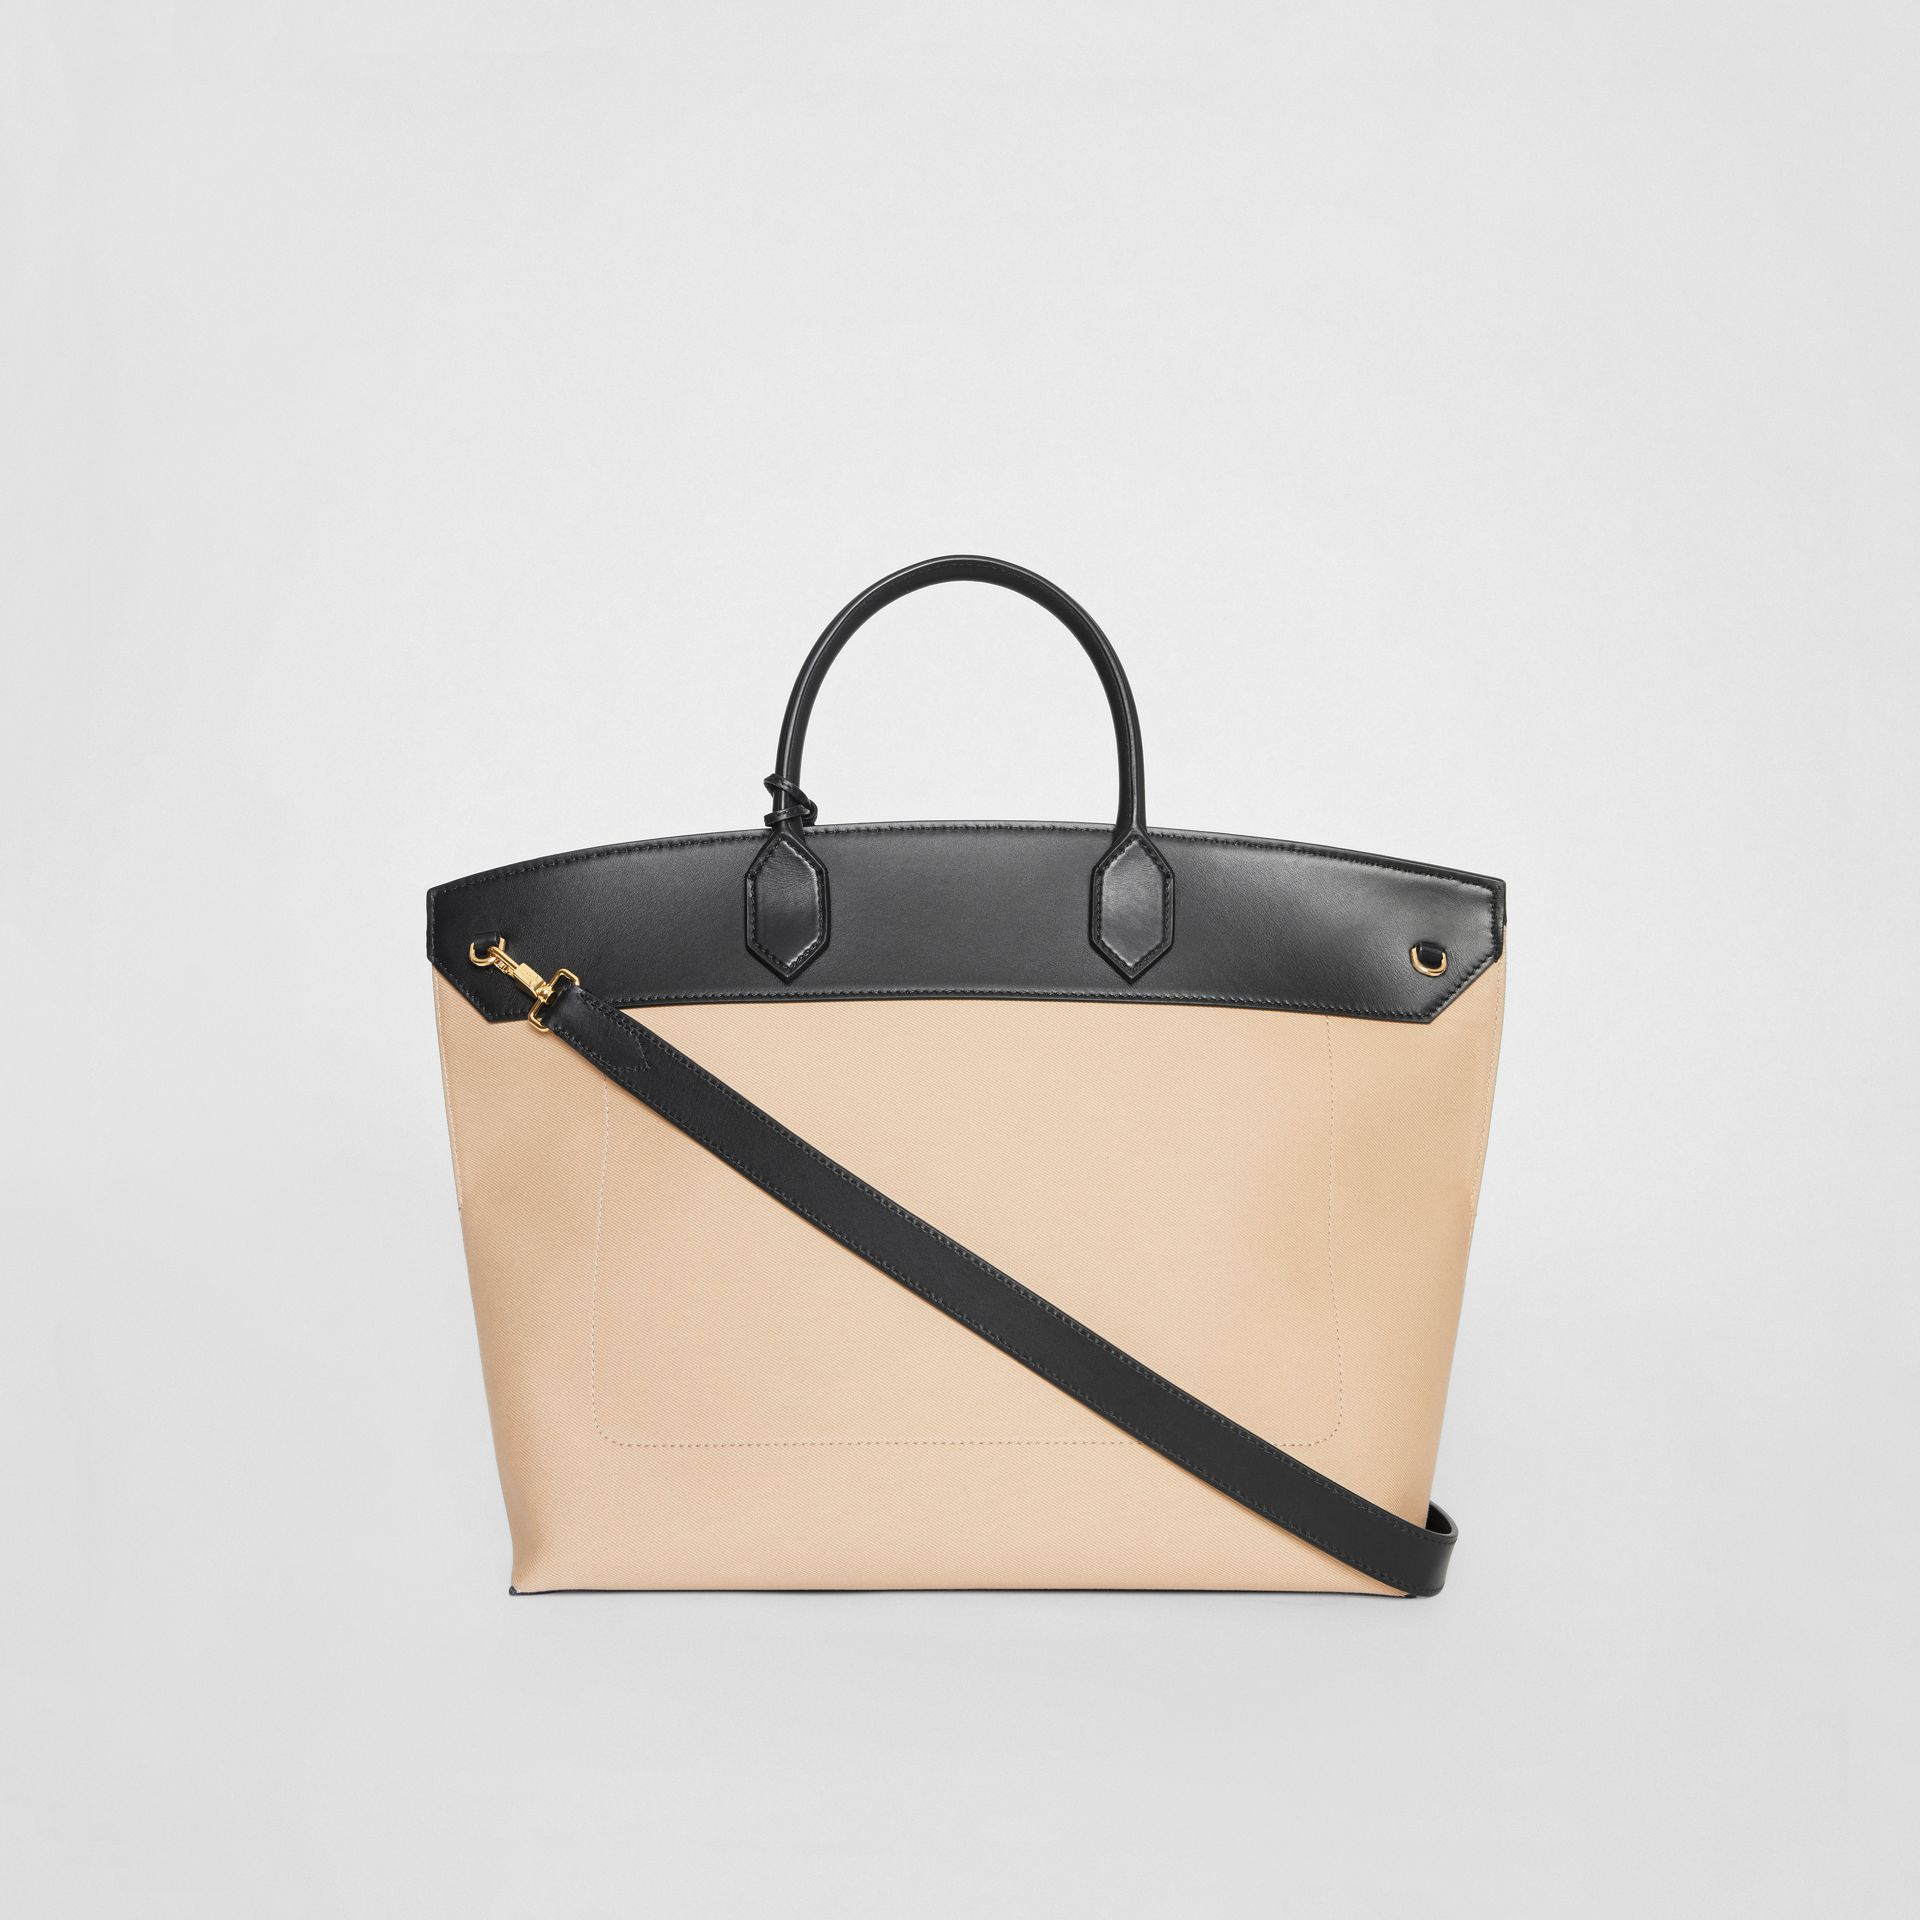 Cotton Canvas and Leather Society Top Handle Bag in Black/honey - Women | Burberry - gallery image 7